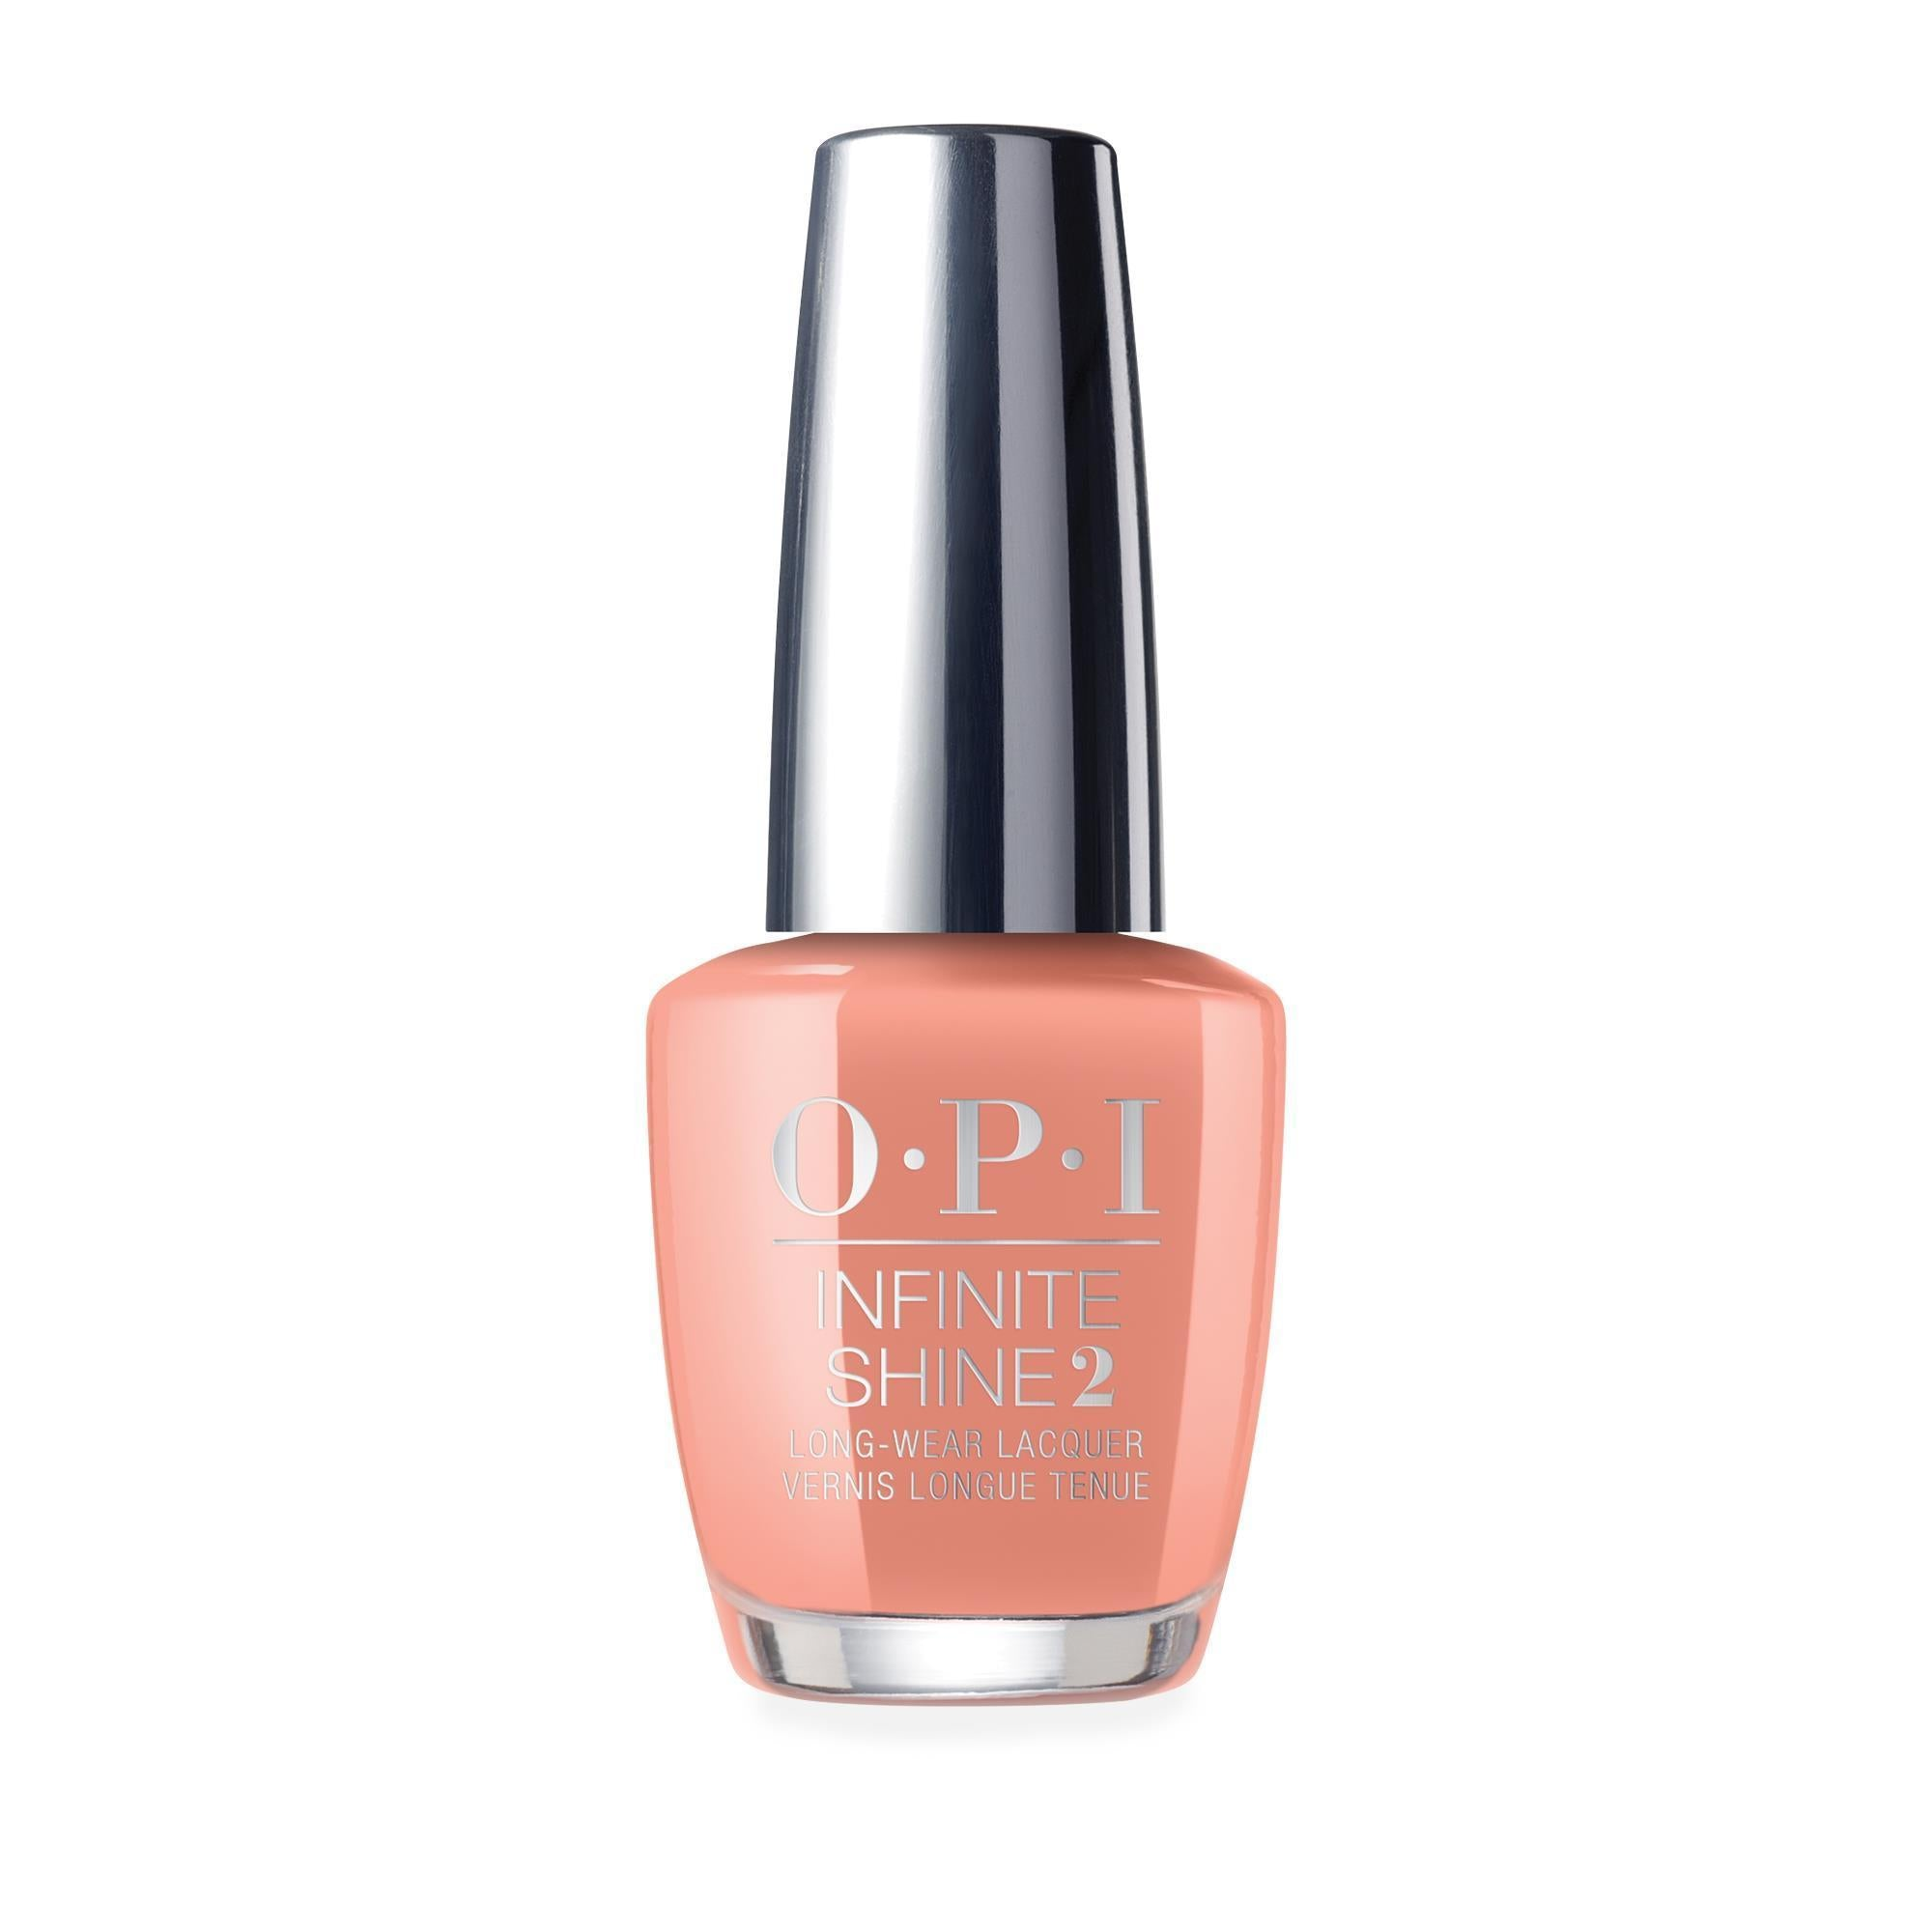 Nail Lacquer & Polish OPI Infinite Shine Barking Up the Wrong Sequoia Lacquer